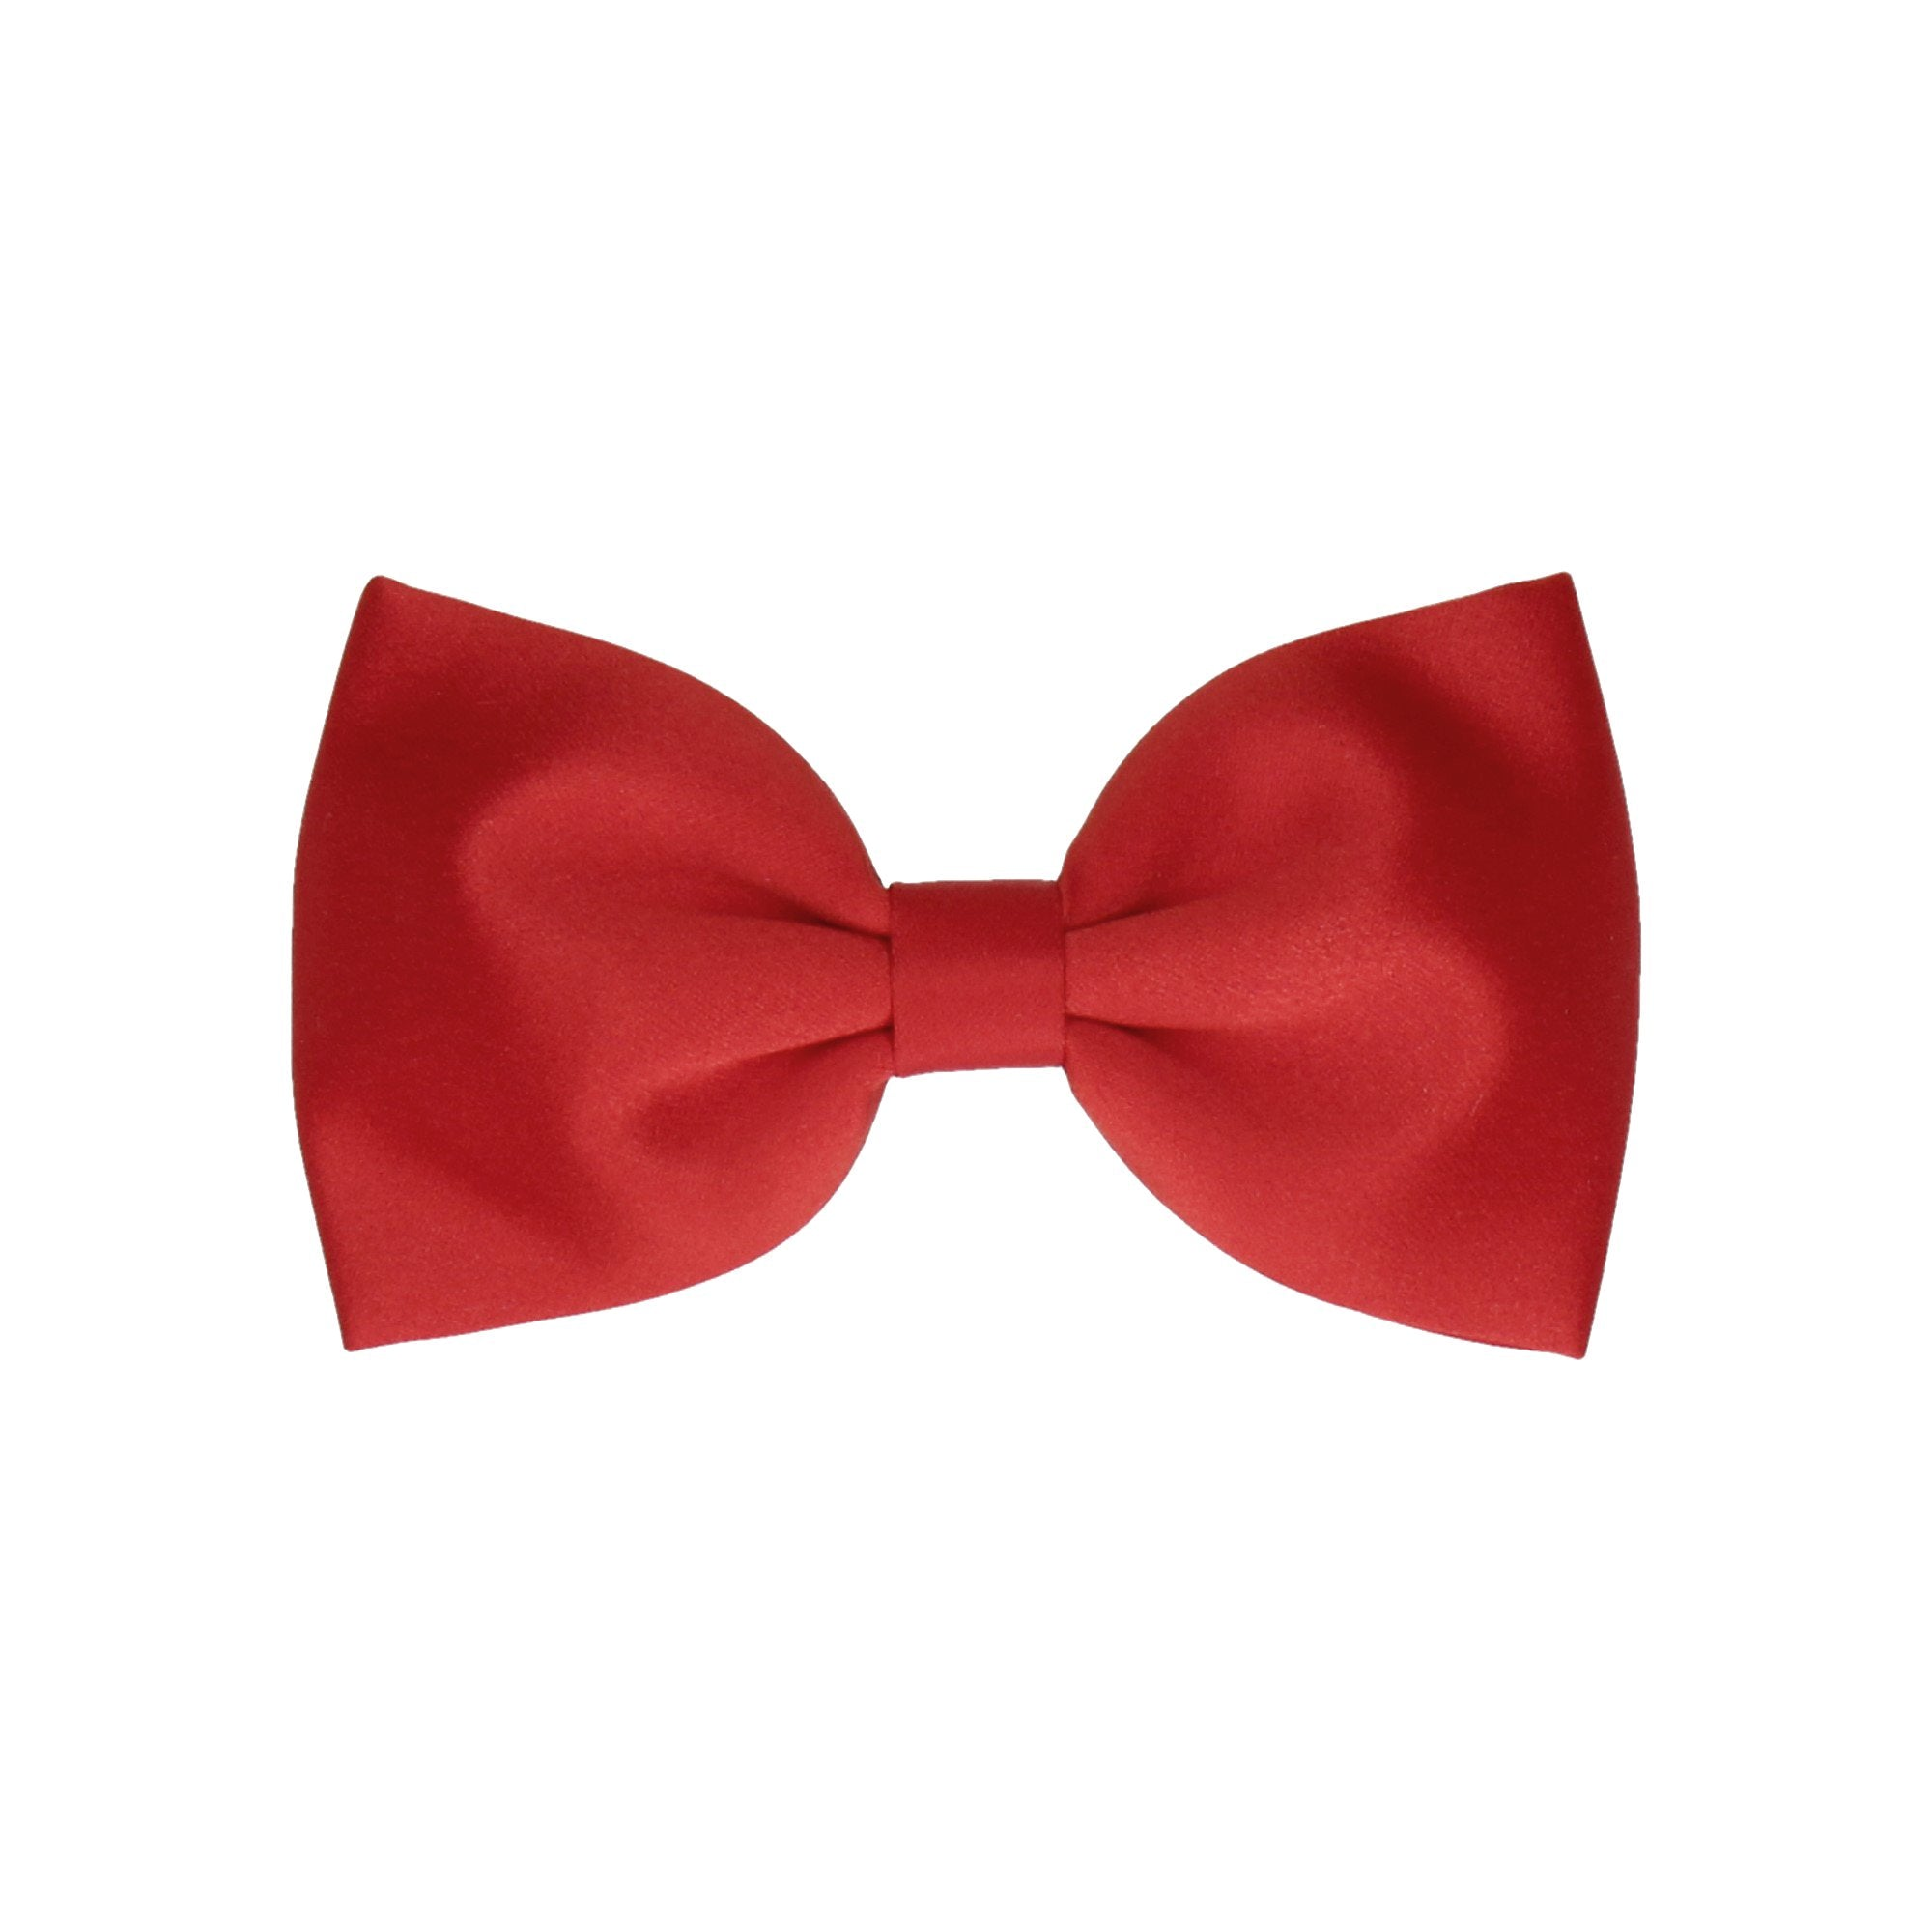 d6bebcc01403 Satin in Vermillion Red (Child's Bow Tie) – Mrs Bow Tie